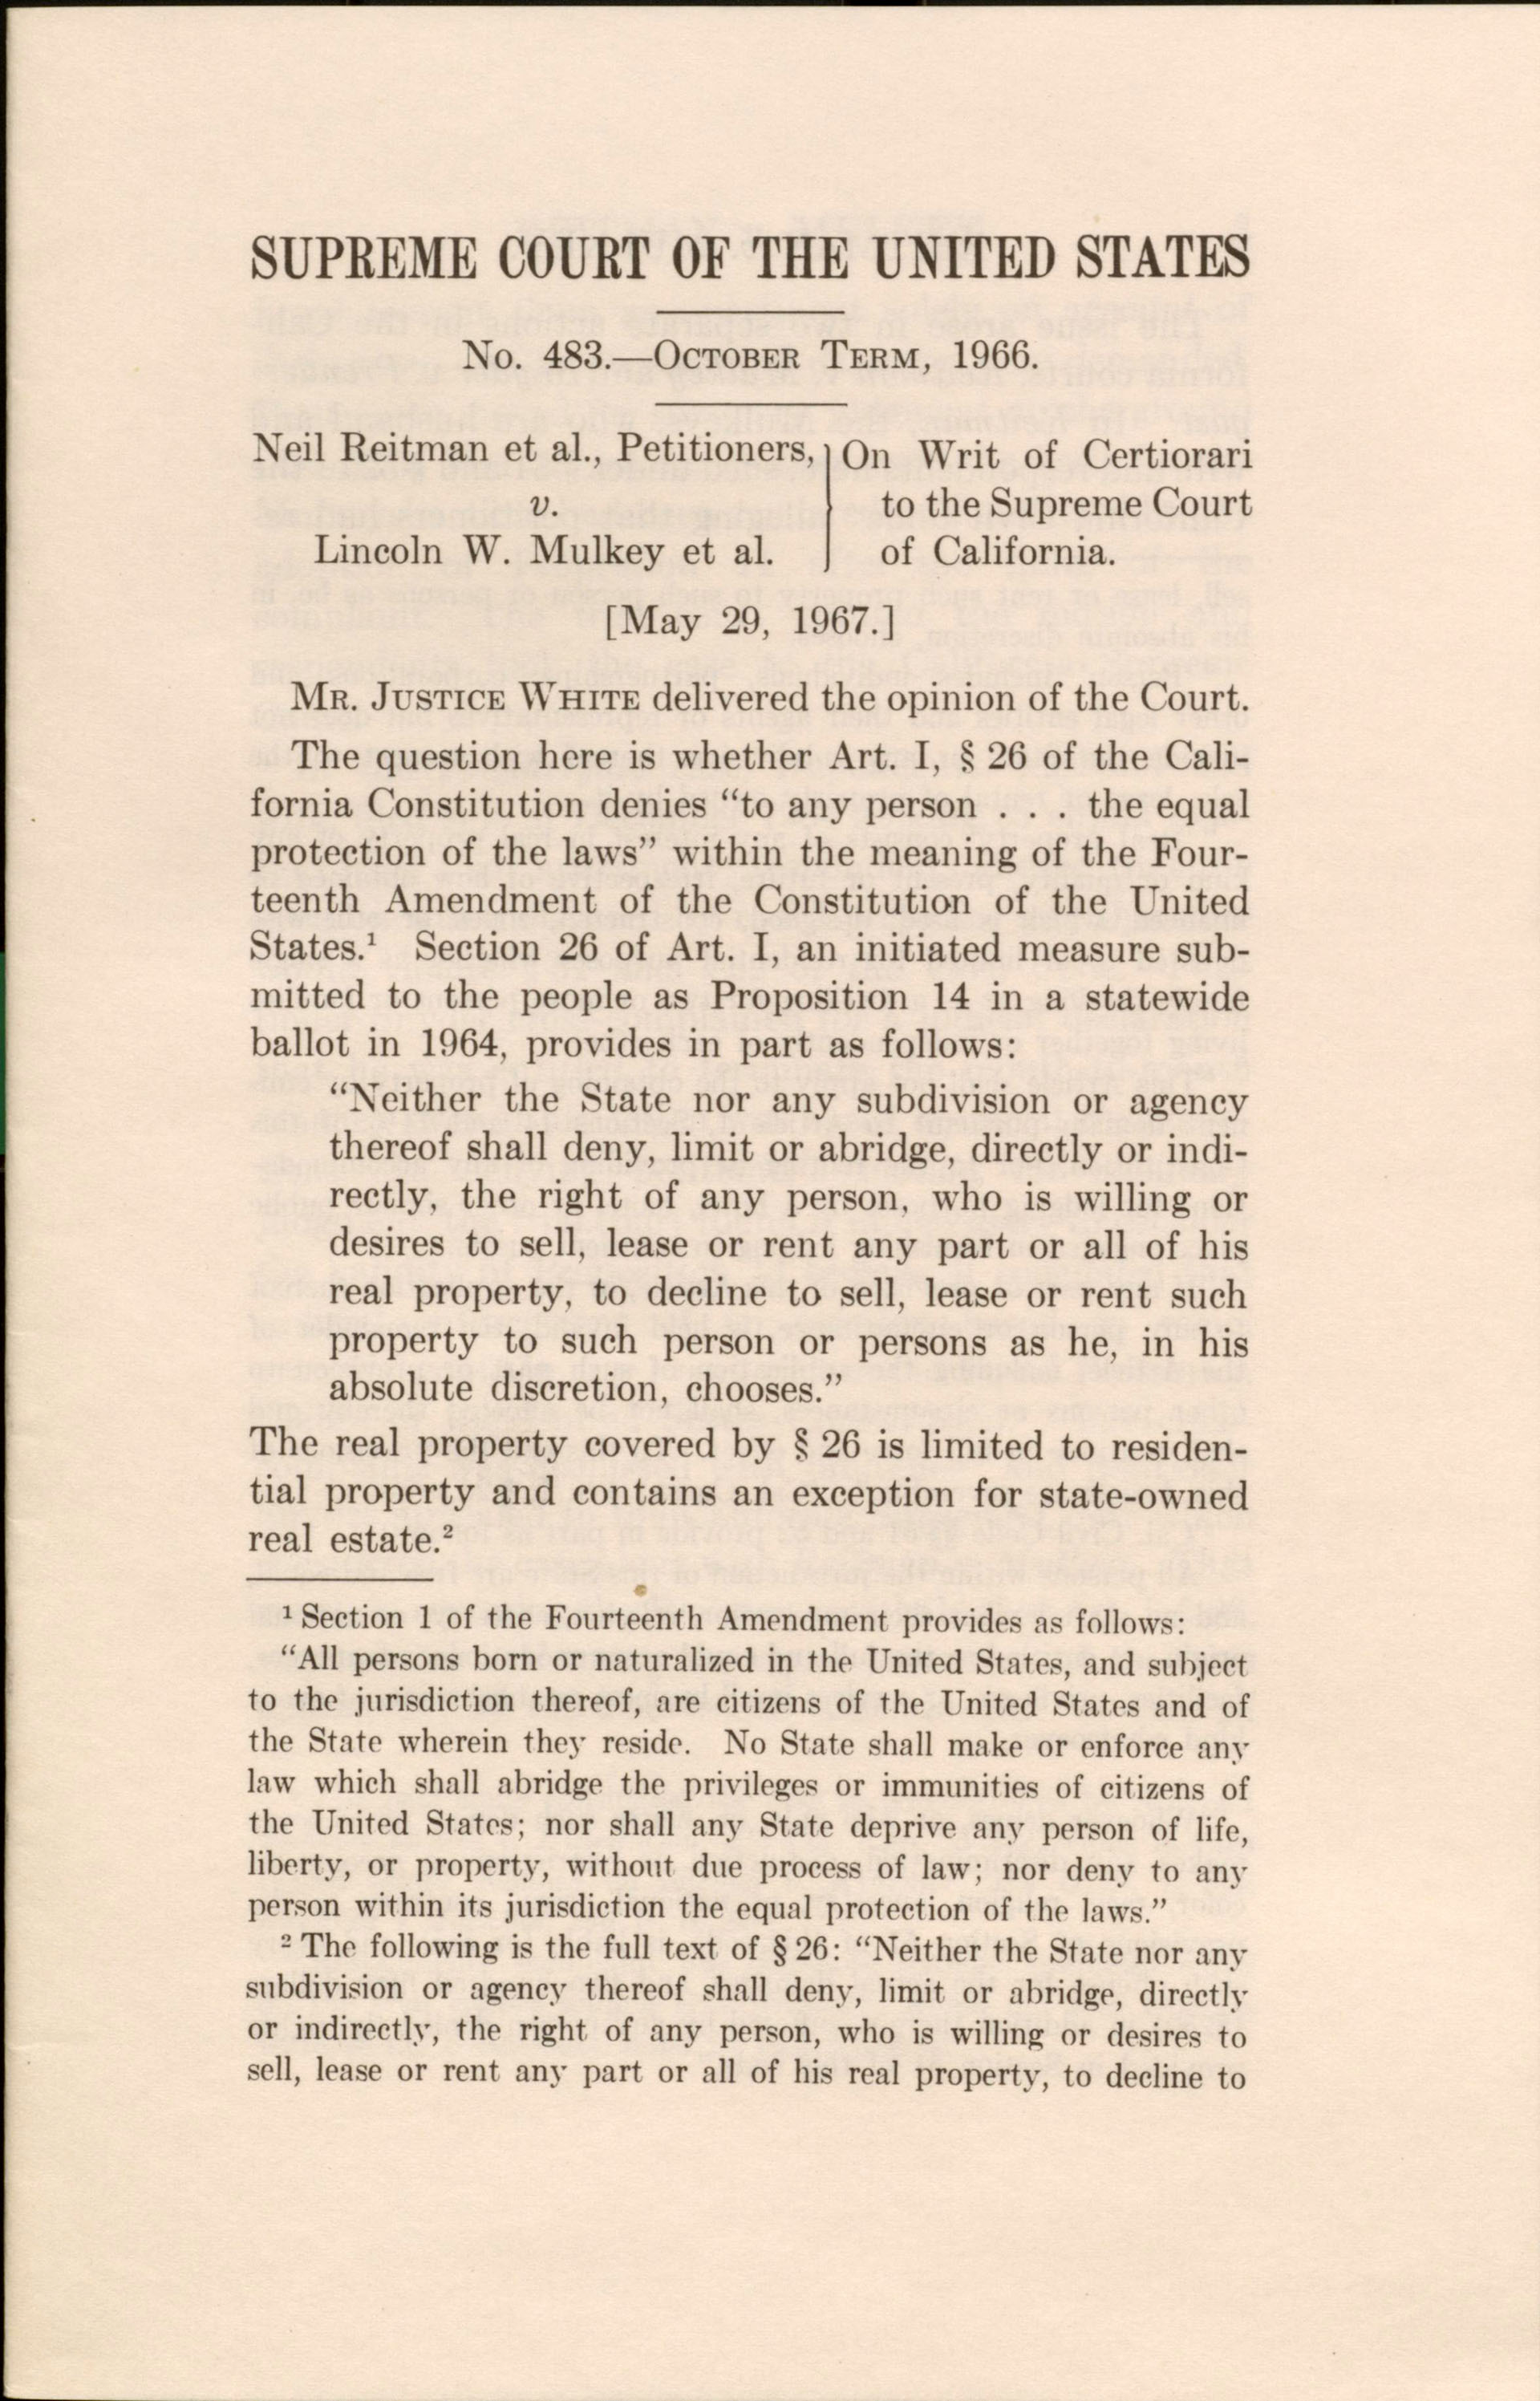 Reitman v. Mulkey Supreme Court decision, O.T. 1966, Thurgood Marshall Papers, Manuscript Division, Library of Congress